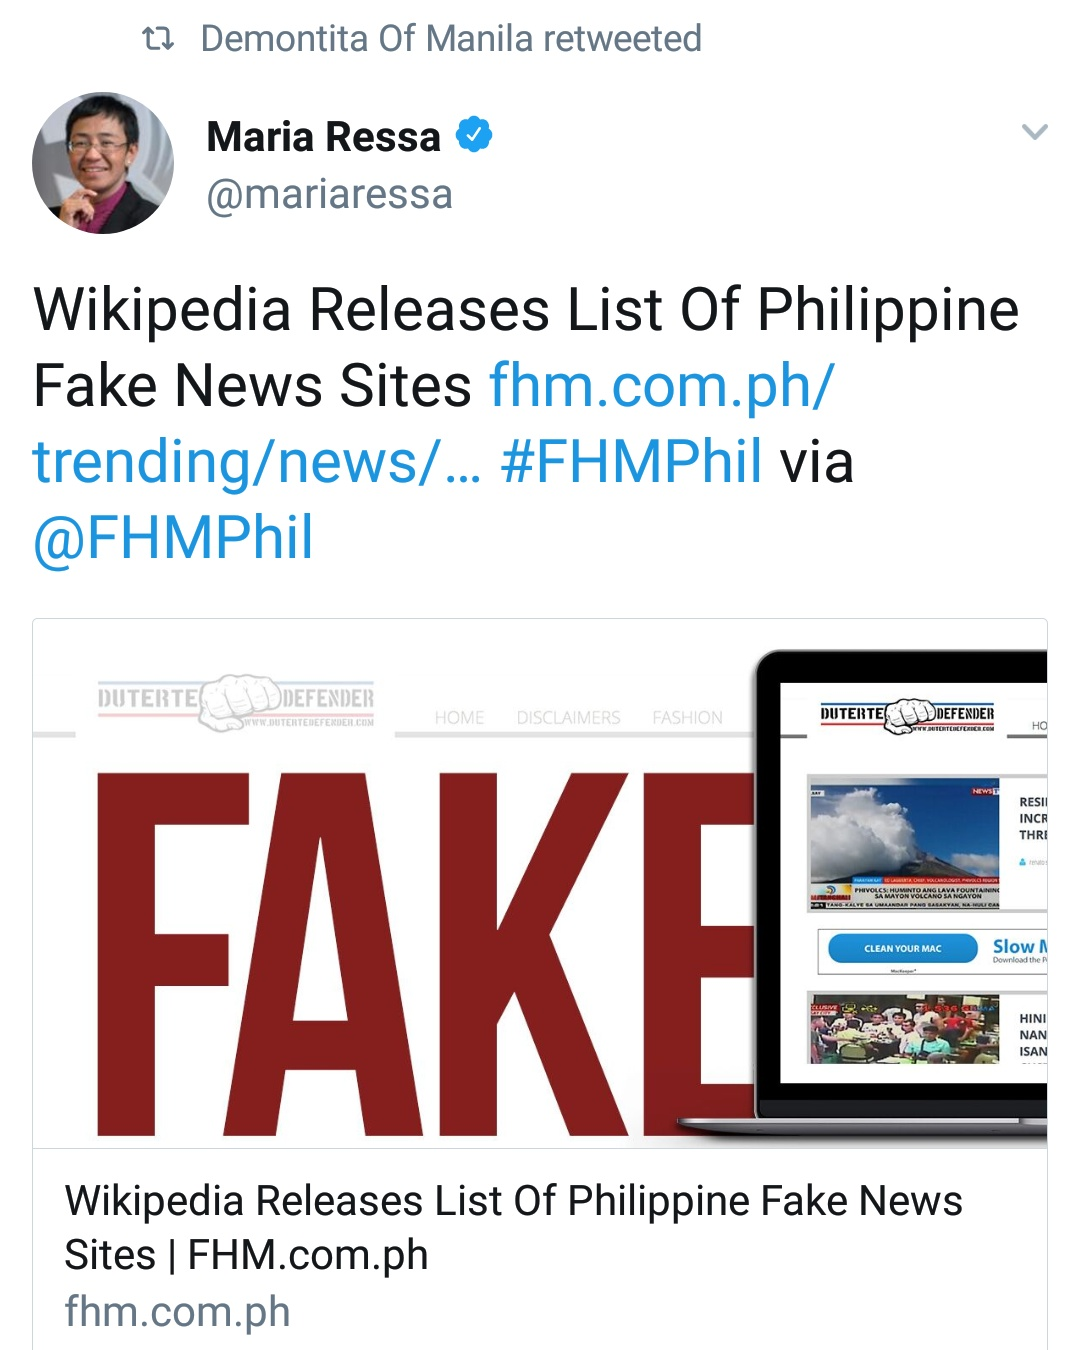 """According to Maria Ressa, Wikipedia, """"released"""" a list of ..."""